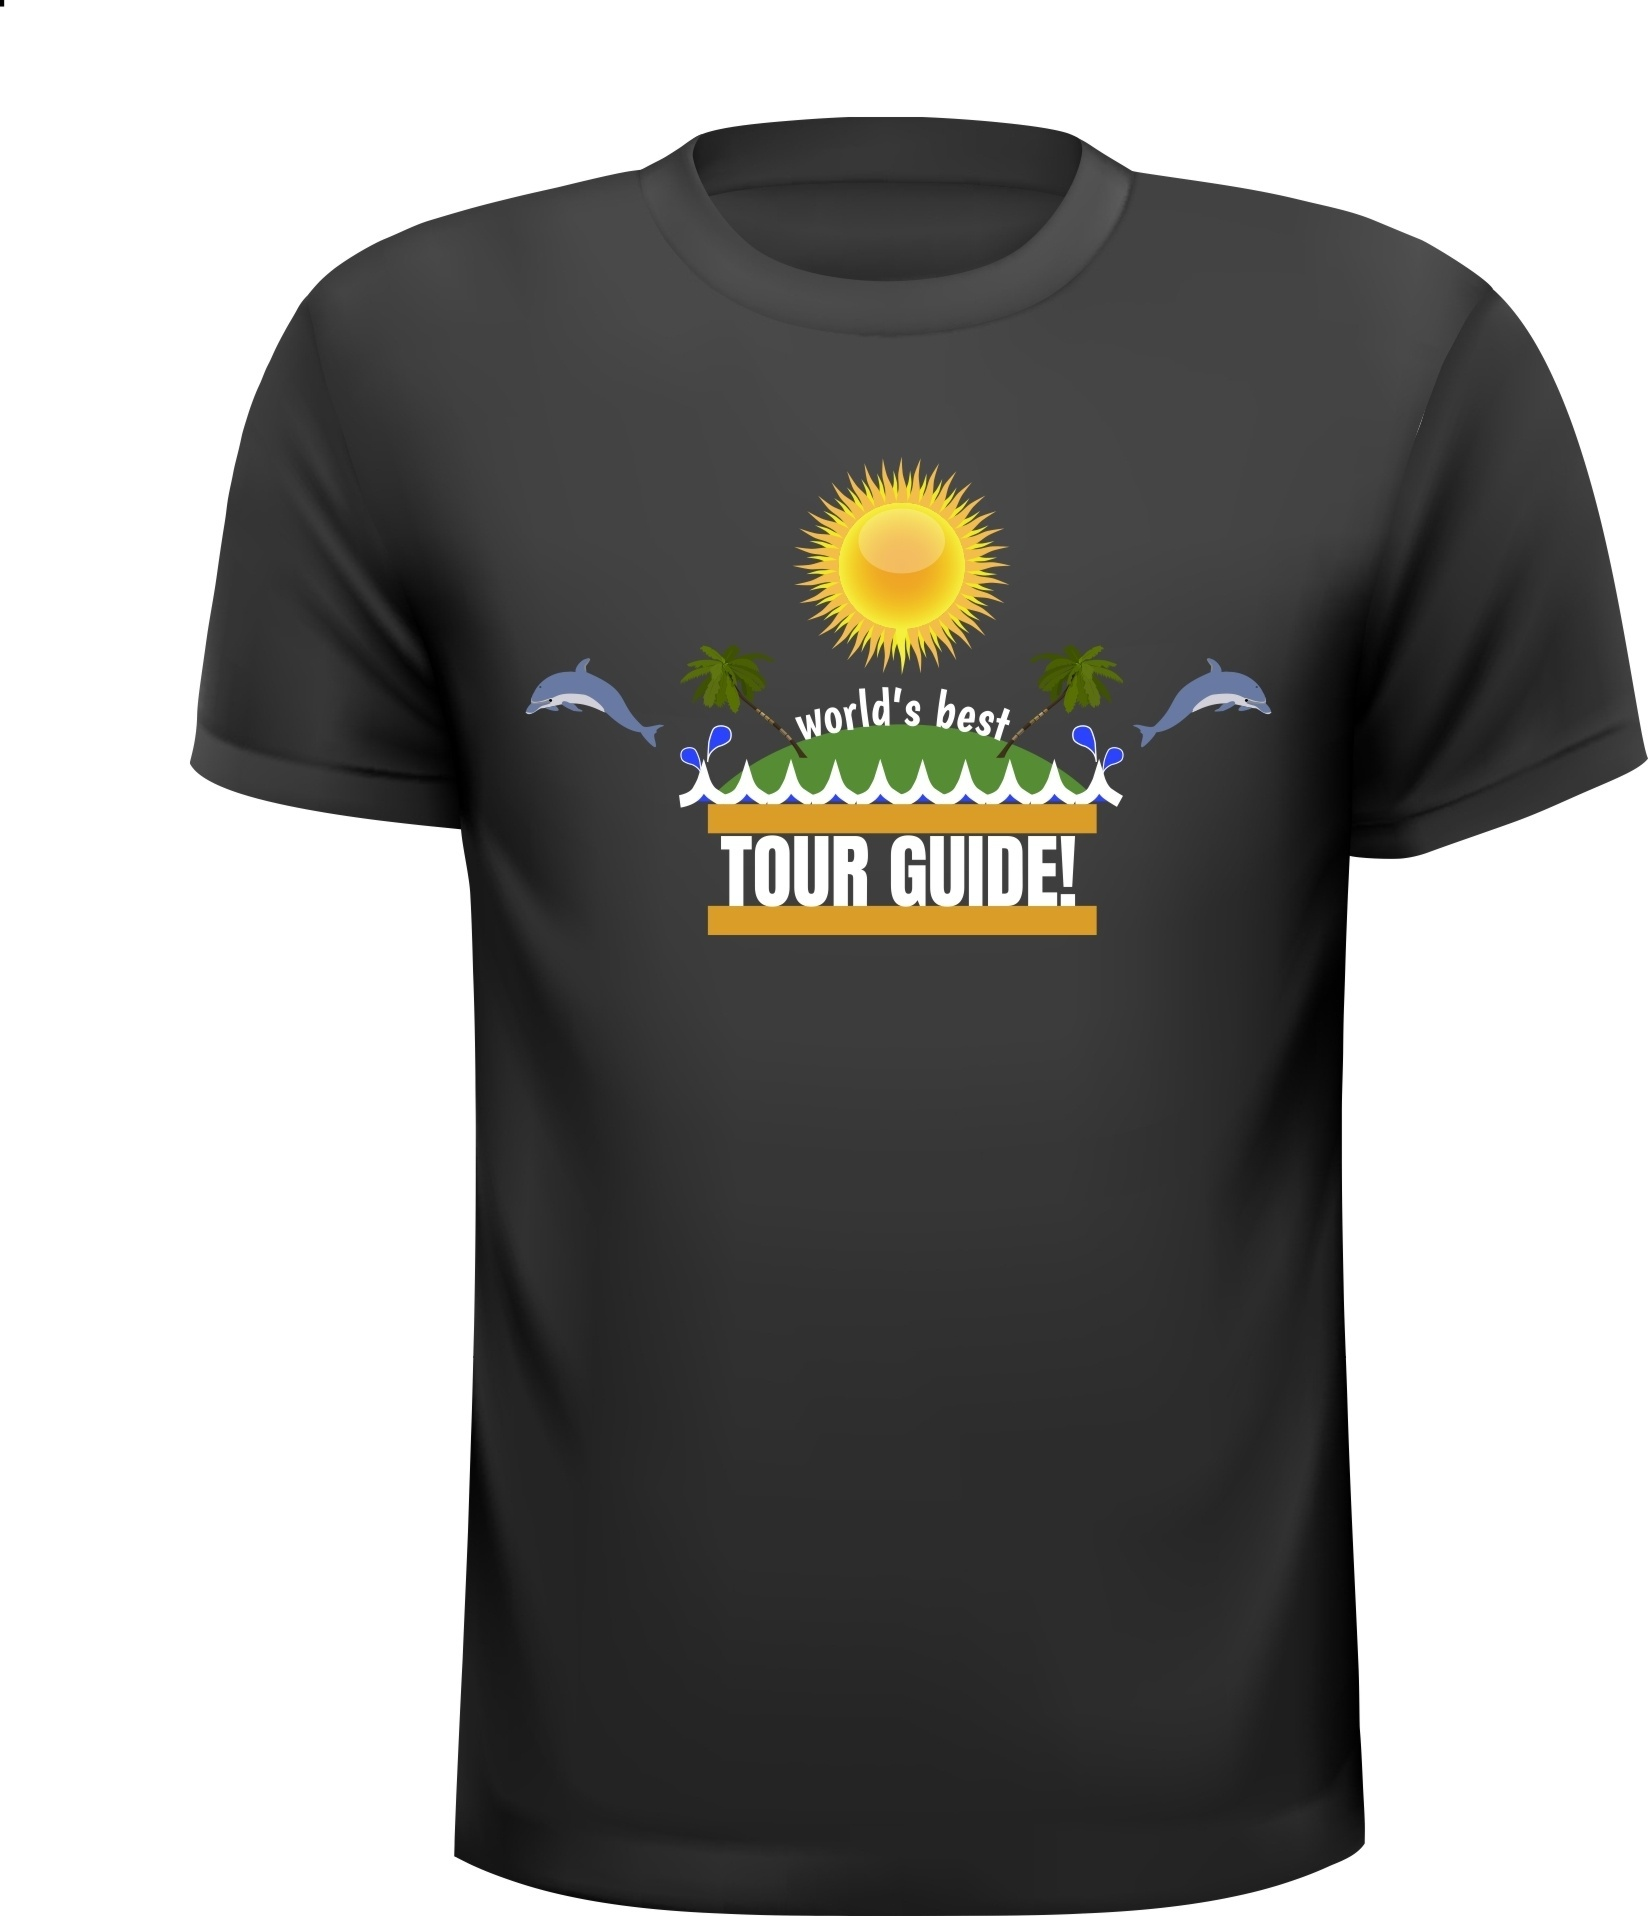 World's best tour guide reisleider shirt